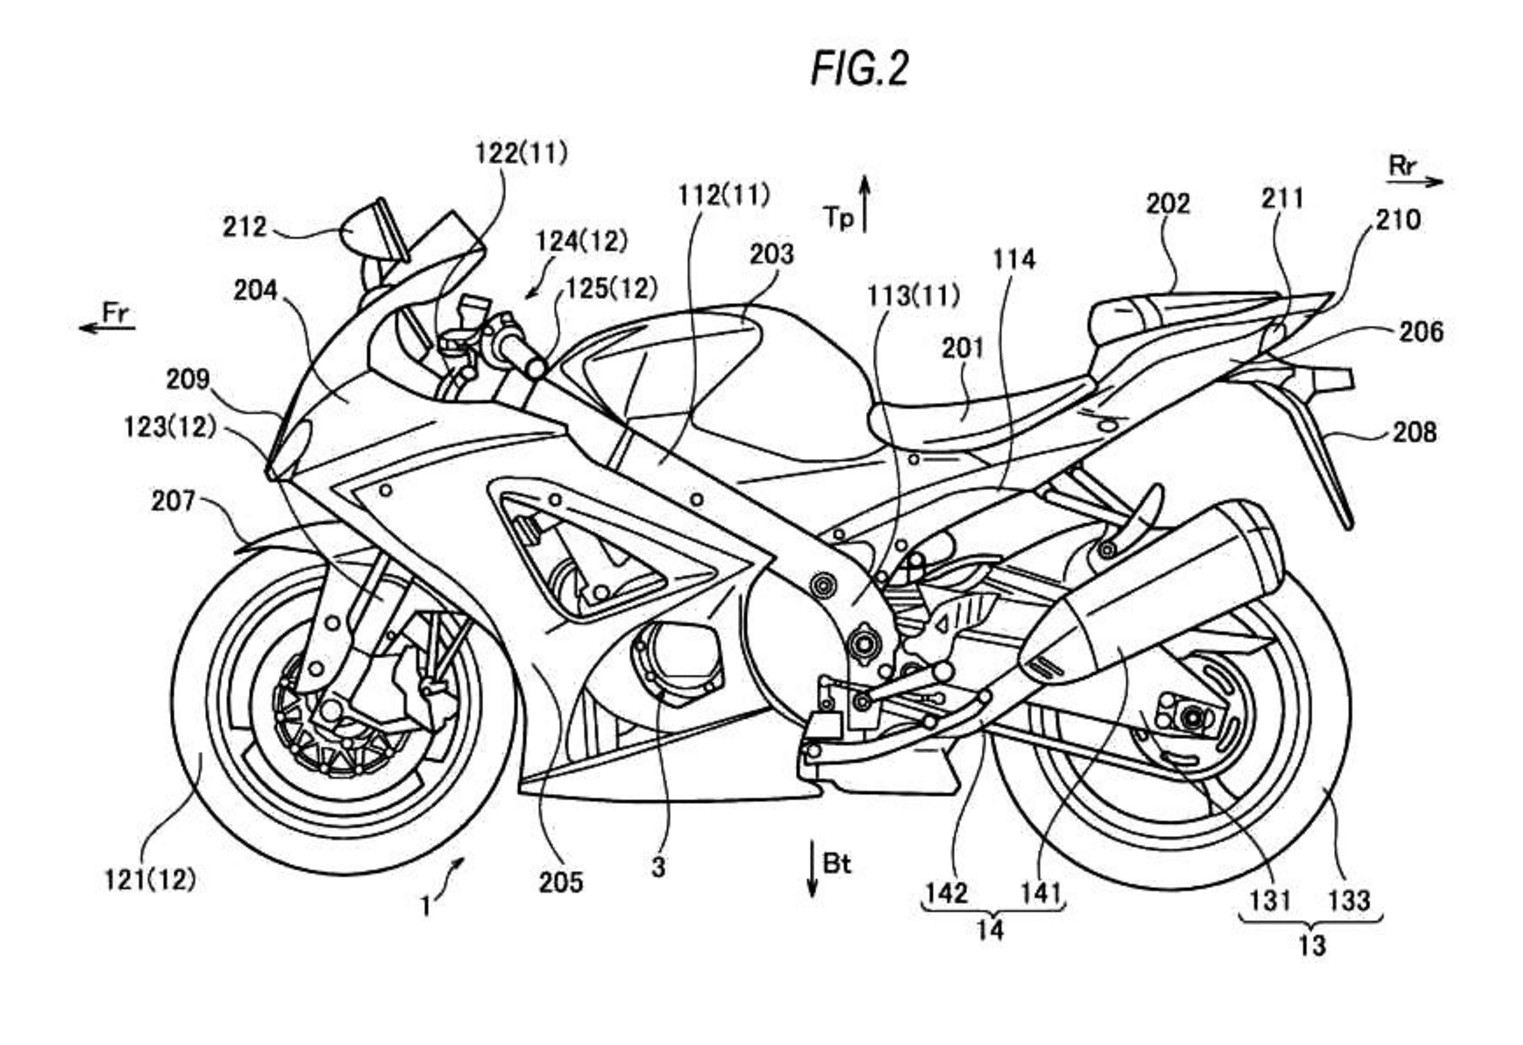 Suzuki Rumored To Add Turbocharging To Its Gsx R Family